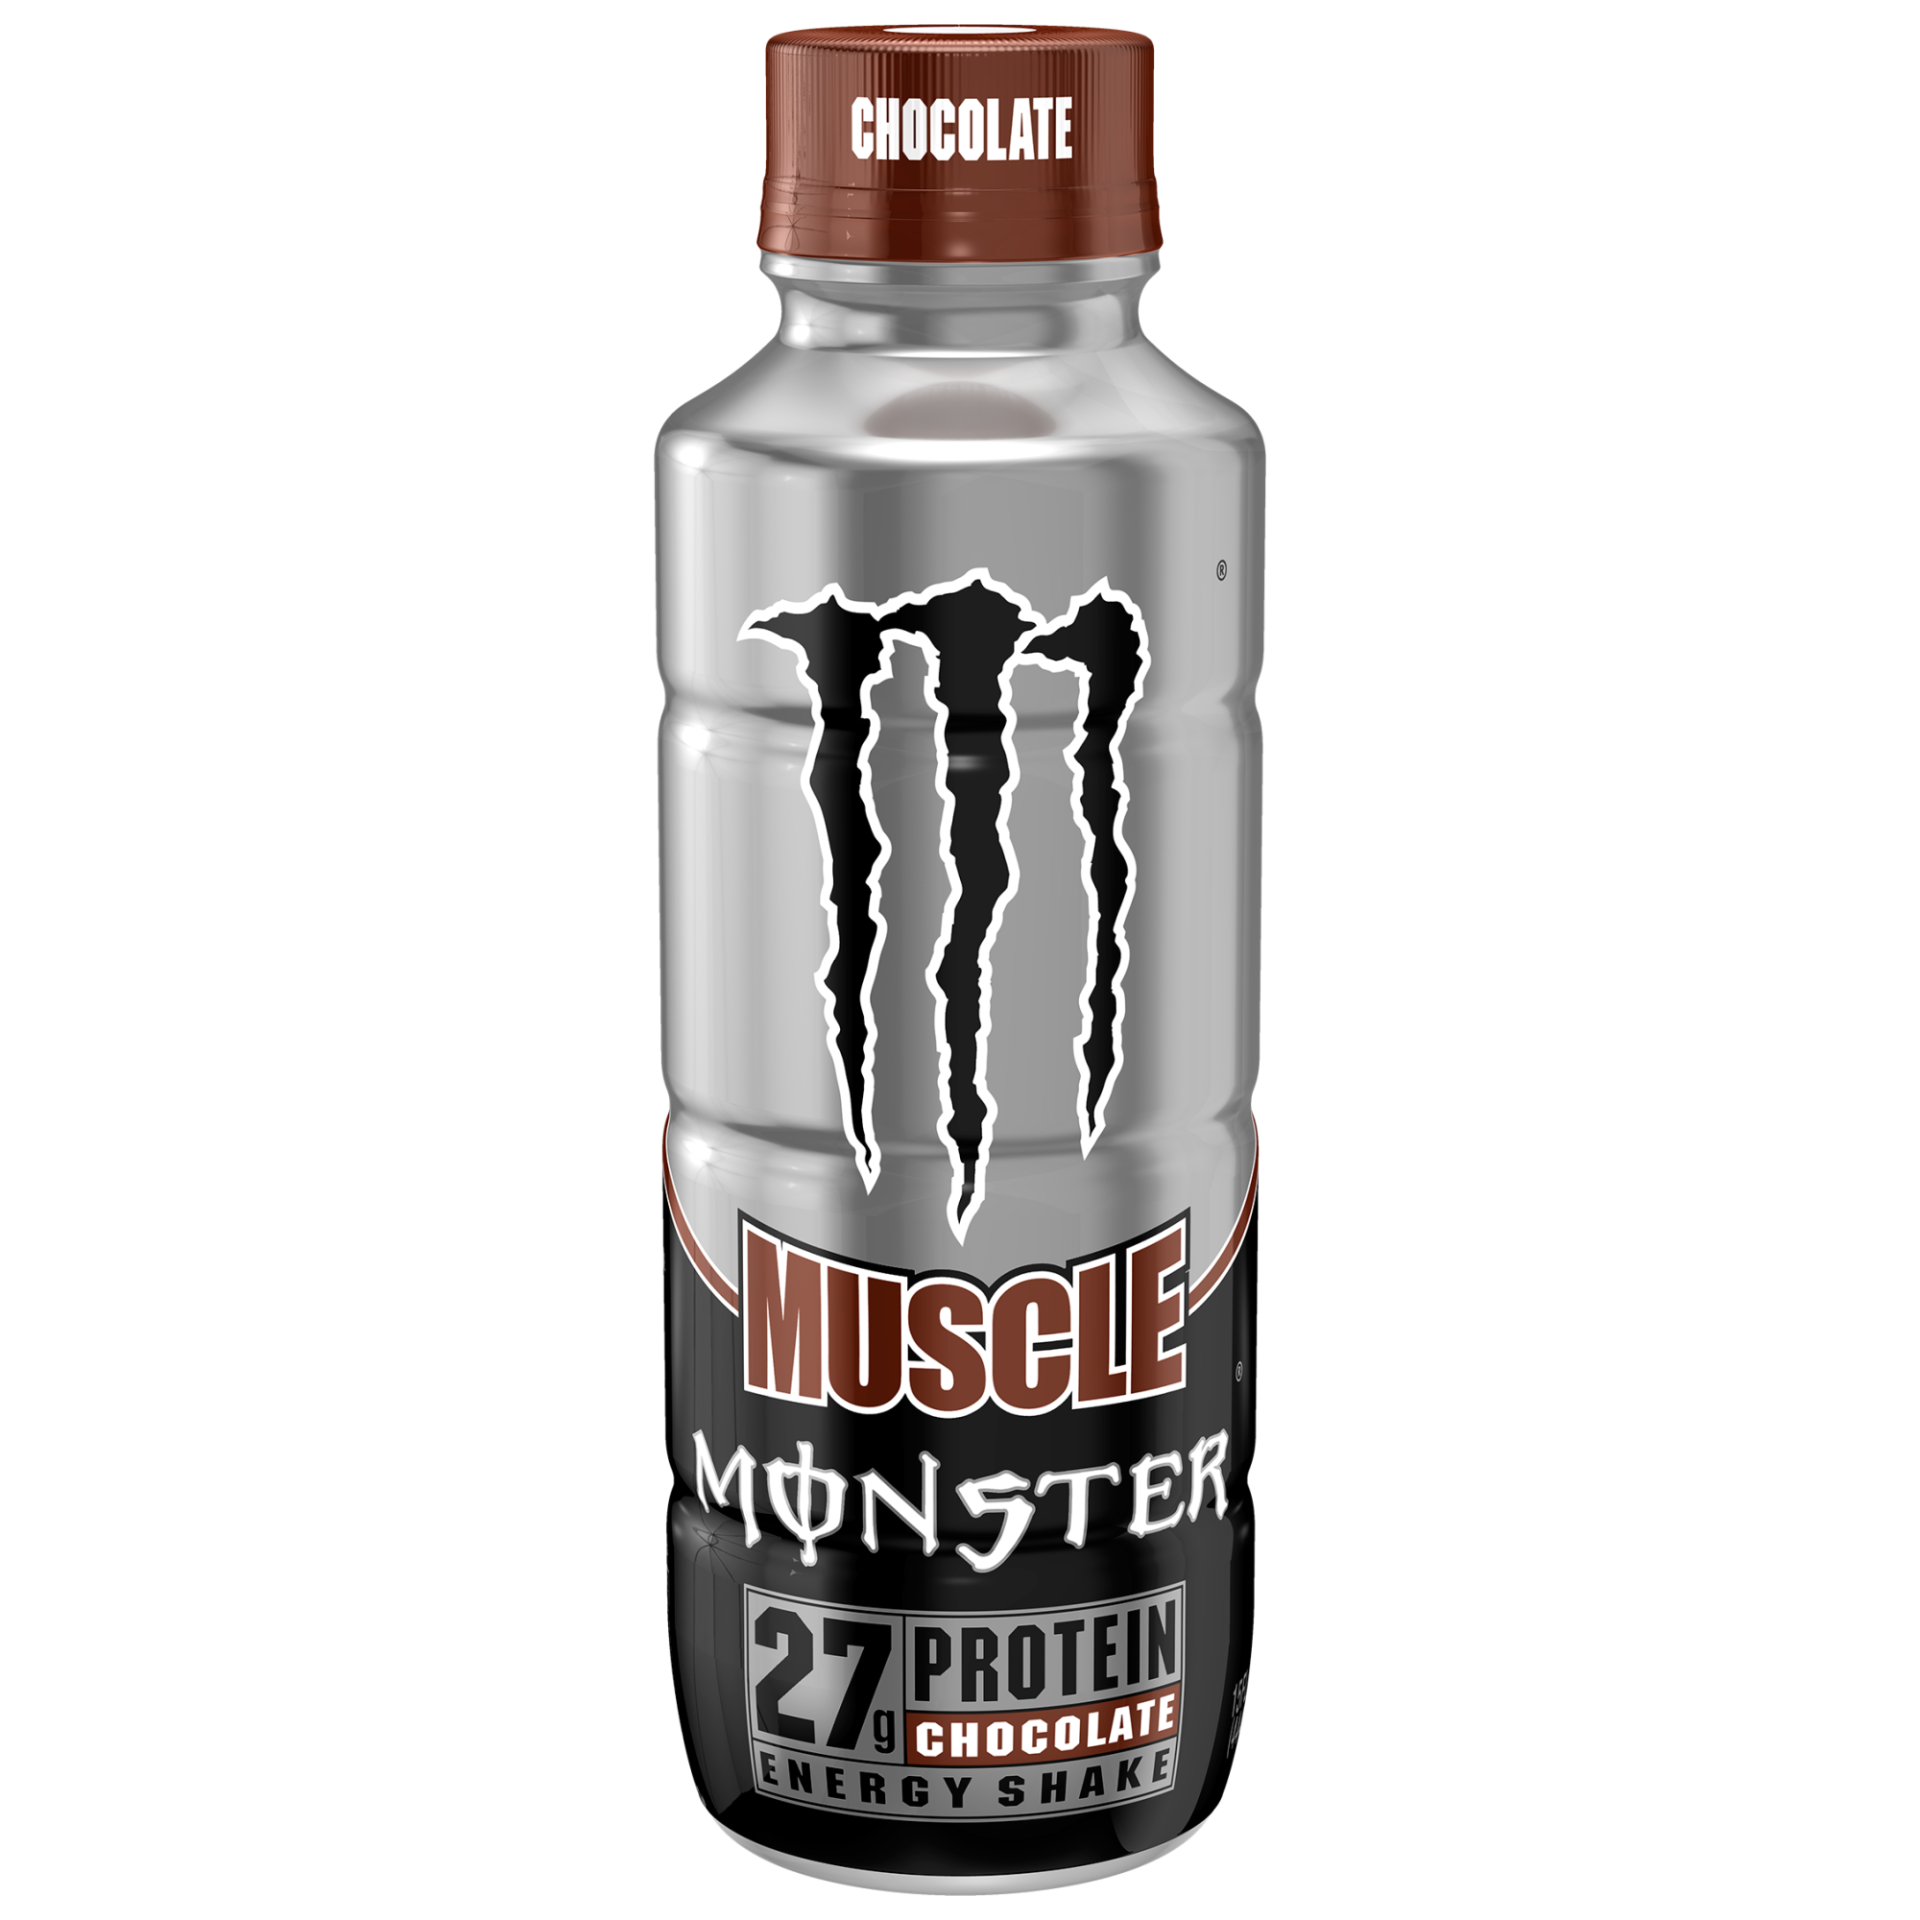 slide 1 of 4, Monster Muscle Chocolate Energy Shake,